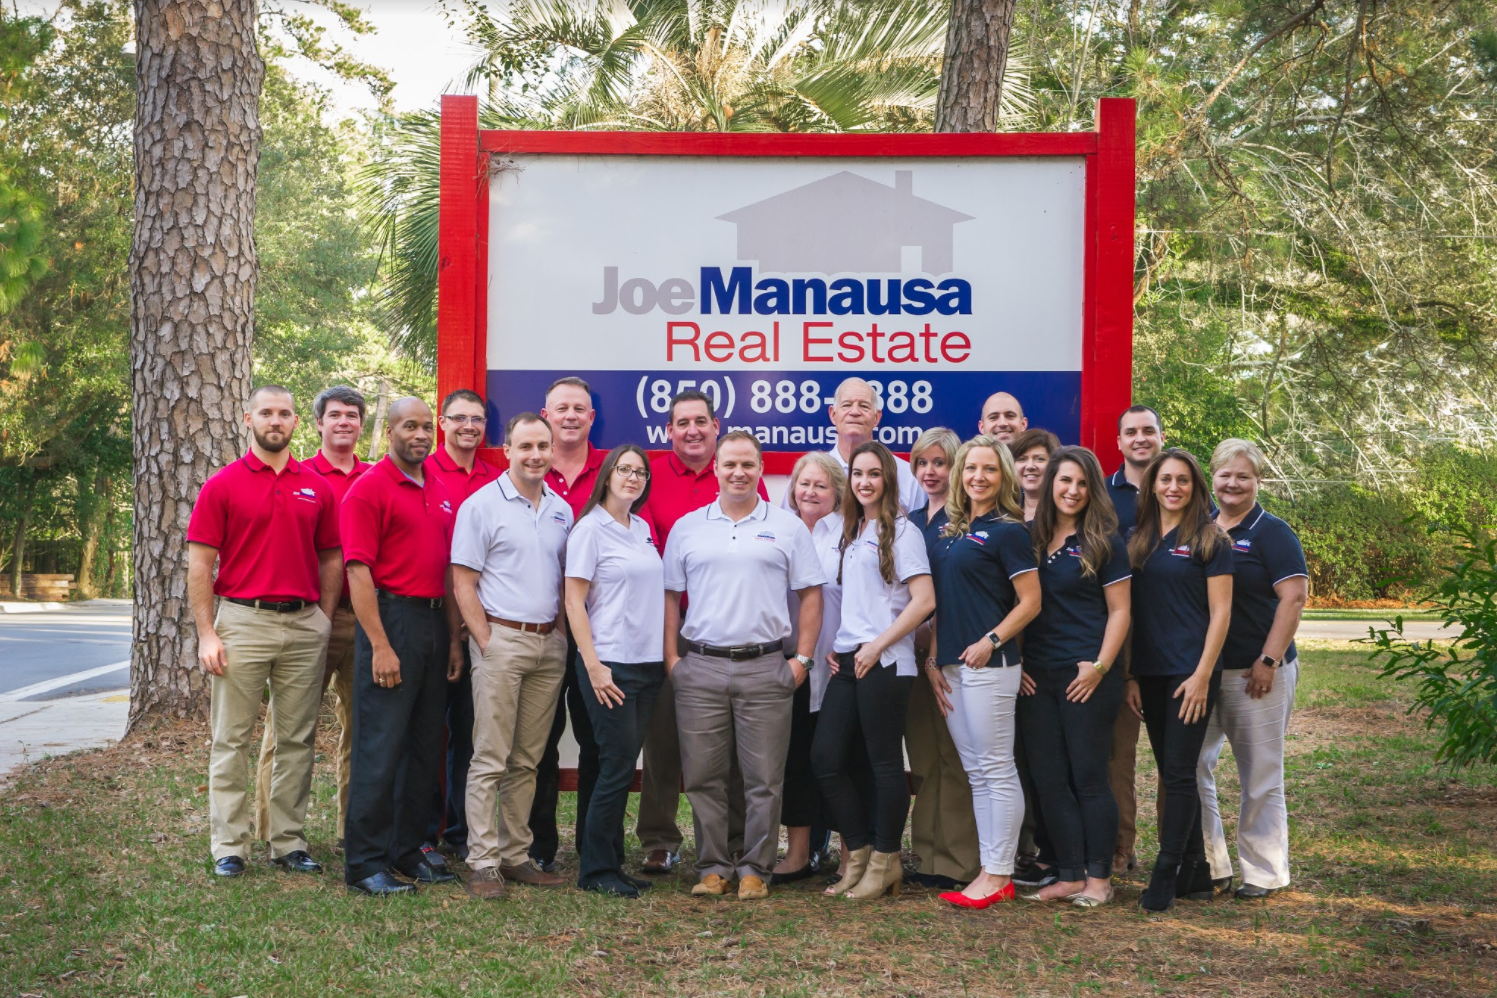 Most Tallahassee agents only sell 6 homes per year. Joe Manausa is on track to sell 600 homes in Tallahassee. Work with the most experienced Tallahassee Realtor.